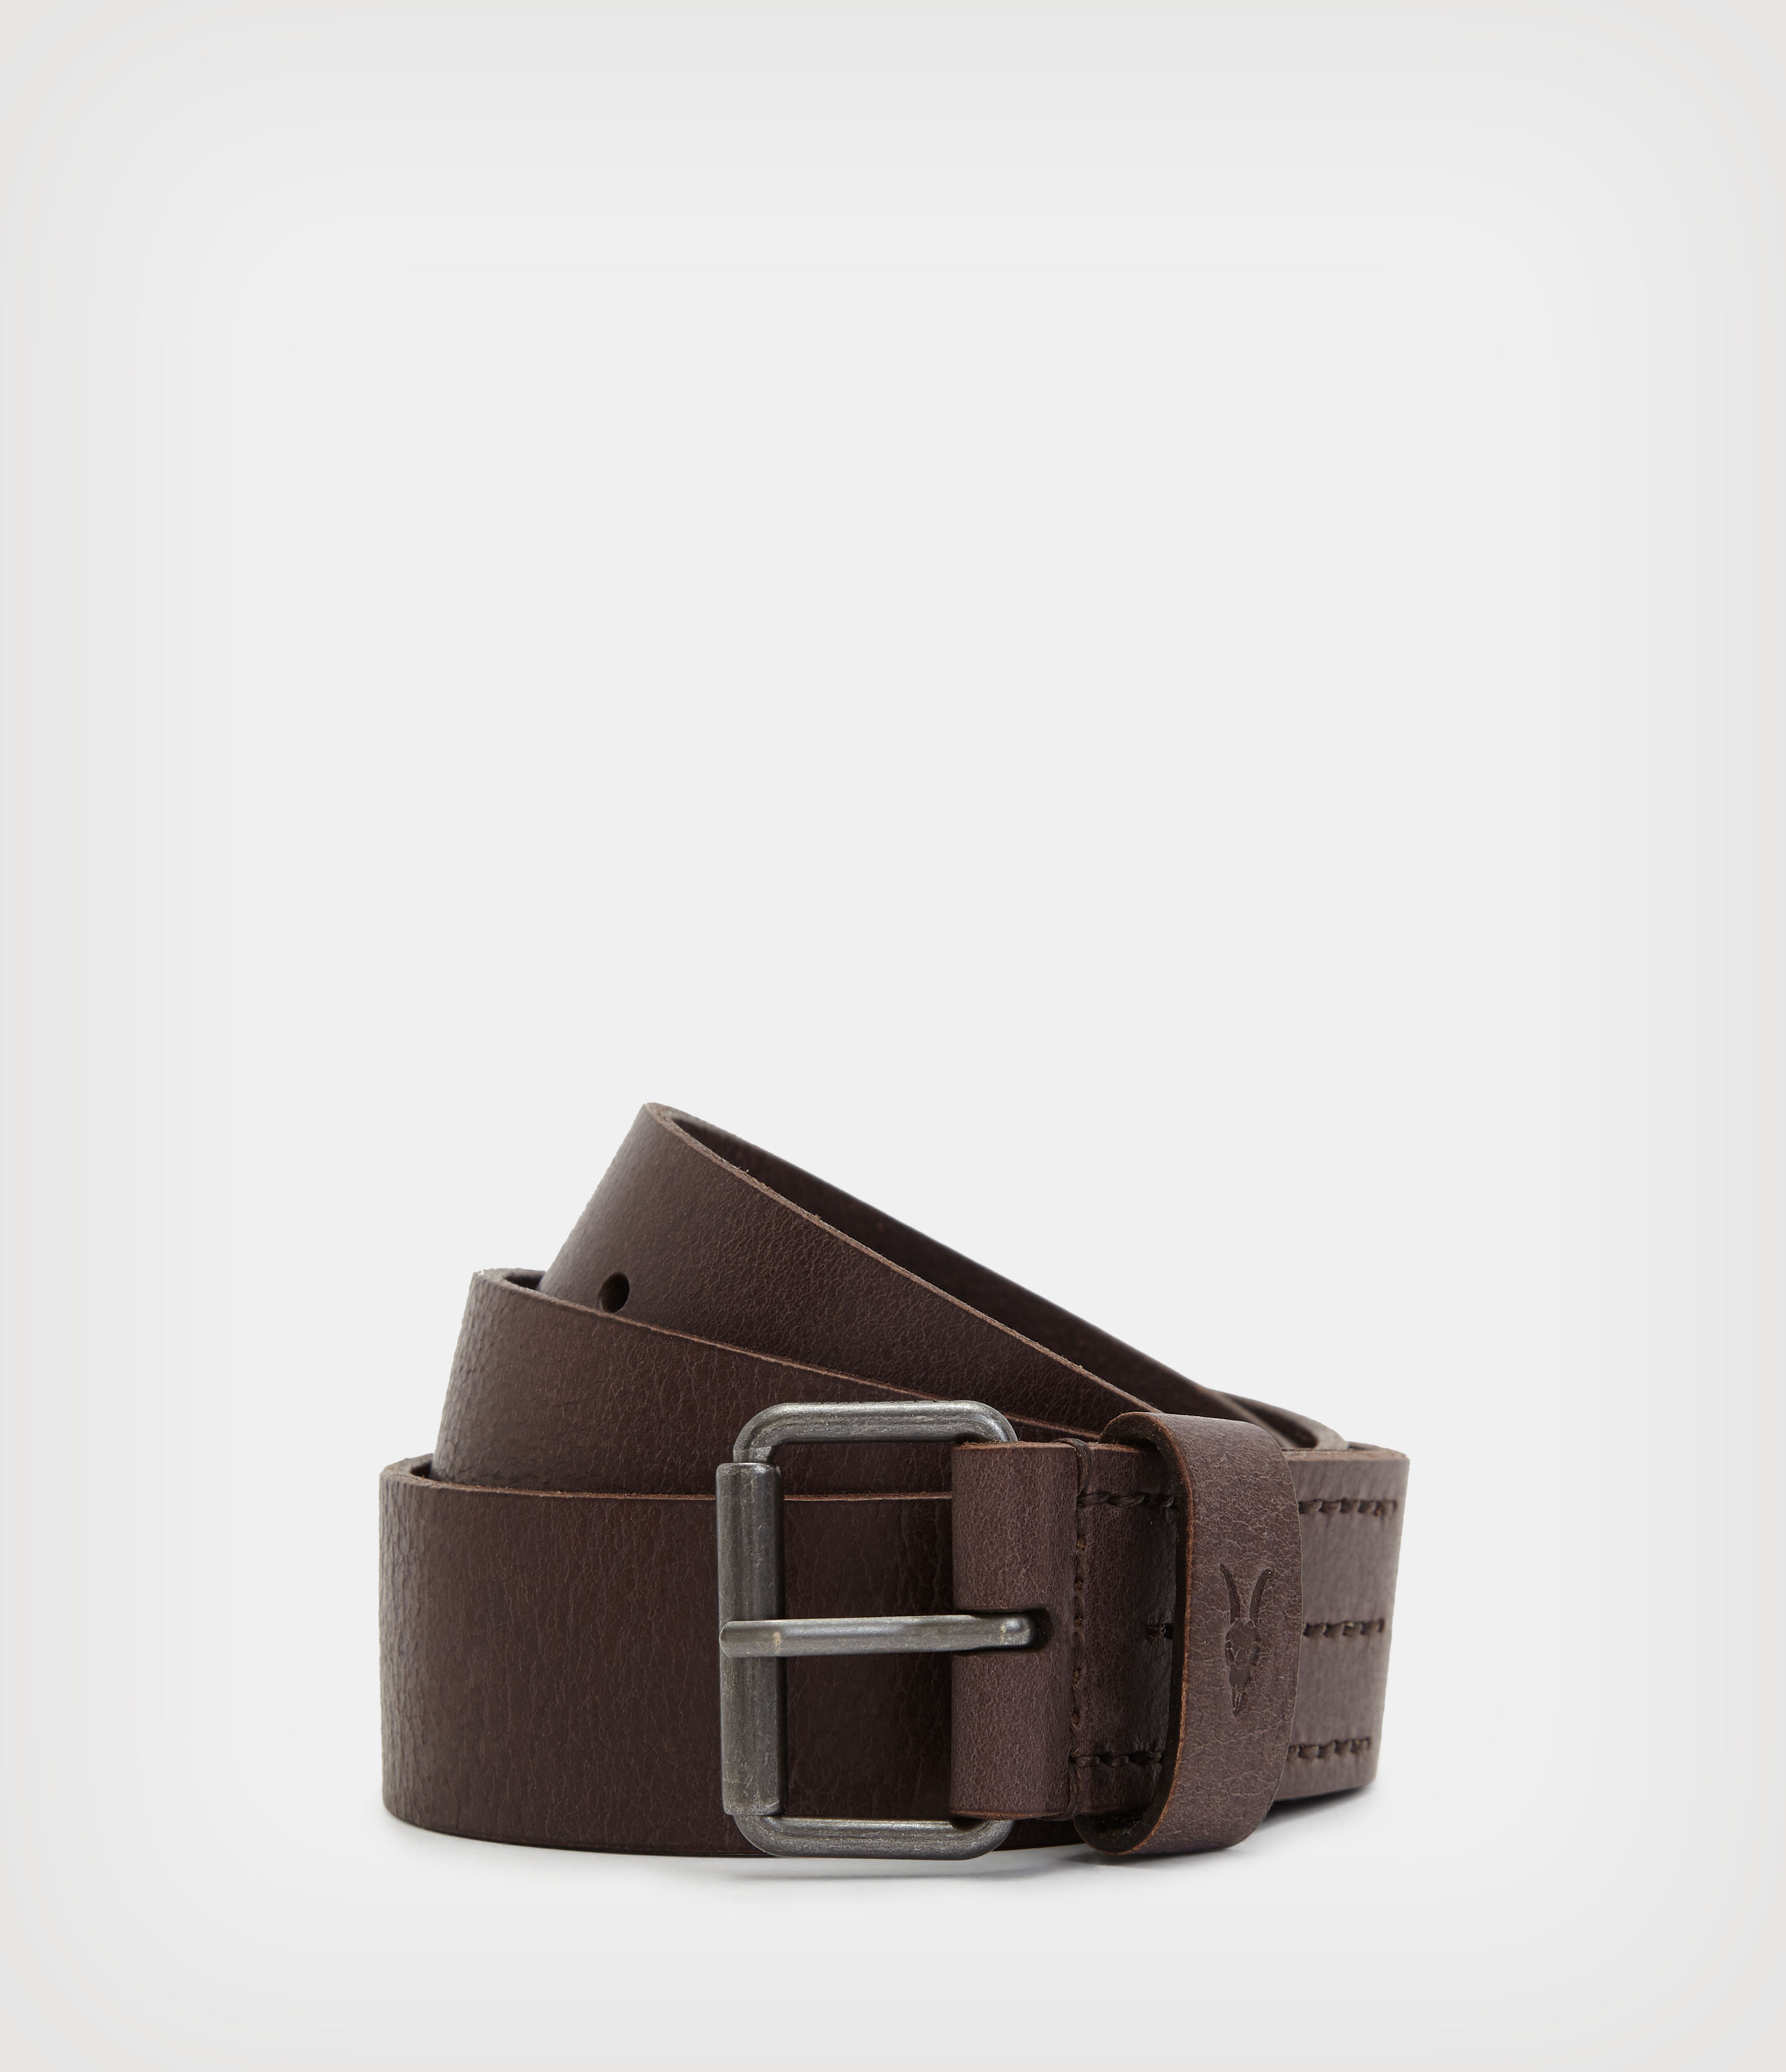 AllSaints Men's Leather Classic Dunston Belt, Brown, Size: 32